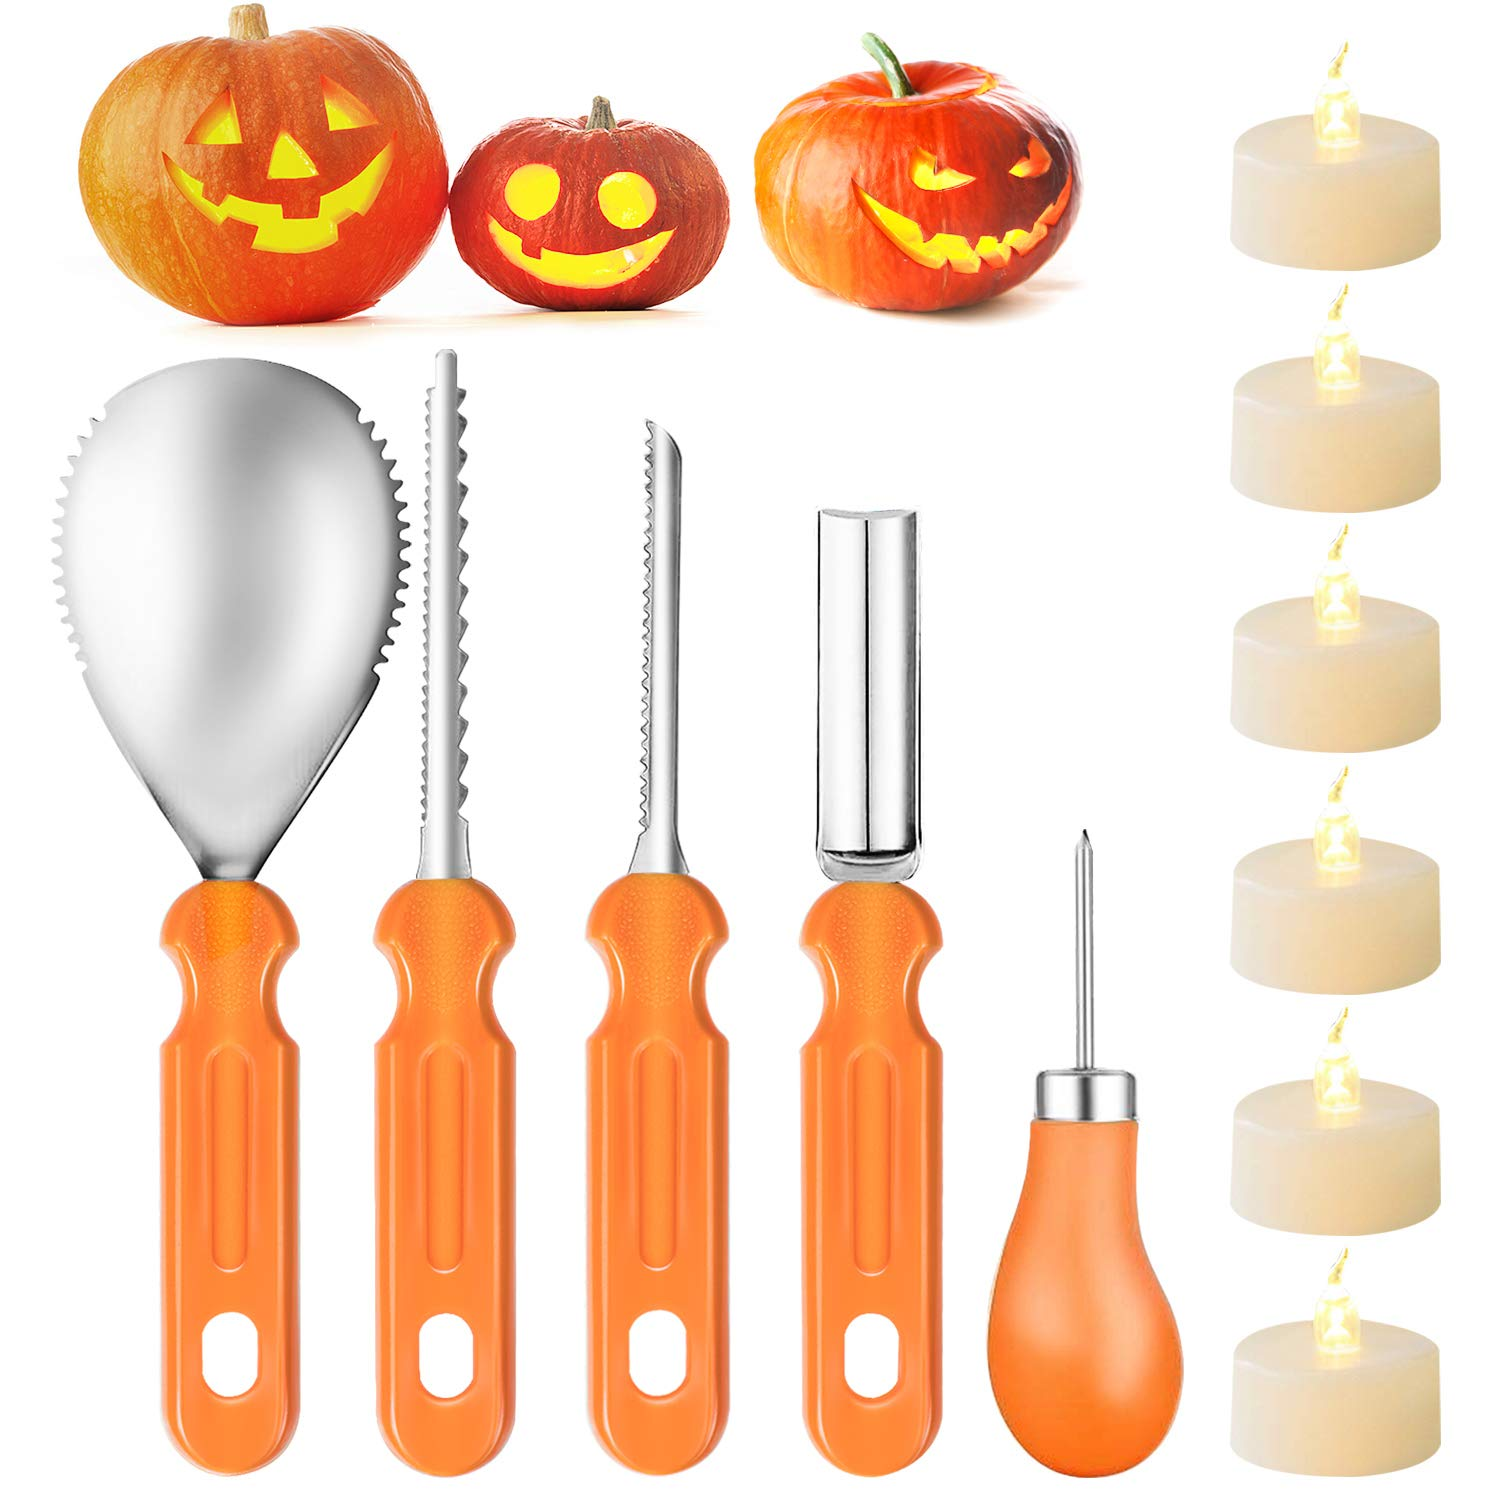 ANGTUO Pumpkin Carving Set, 5 Pieces Stainless Steel Halloween Pumpkin Carving Tool Kit DIY Pumpkin Decoration with Use Instruction Manual and 6pcs LED Tealight Candles by ANGTUO